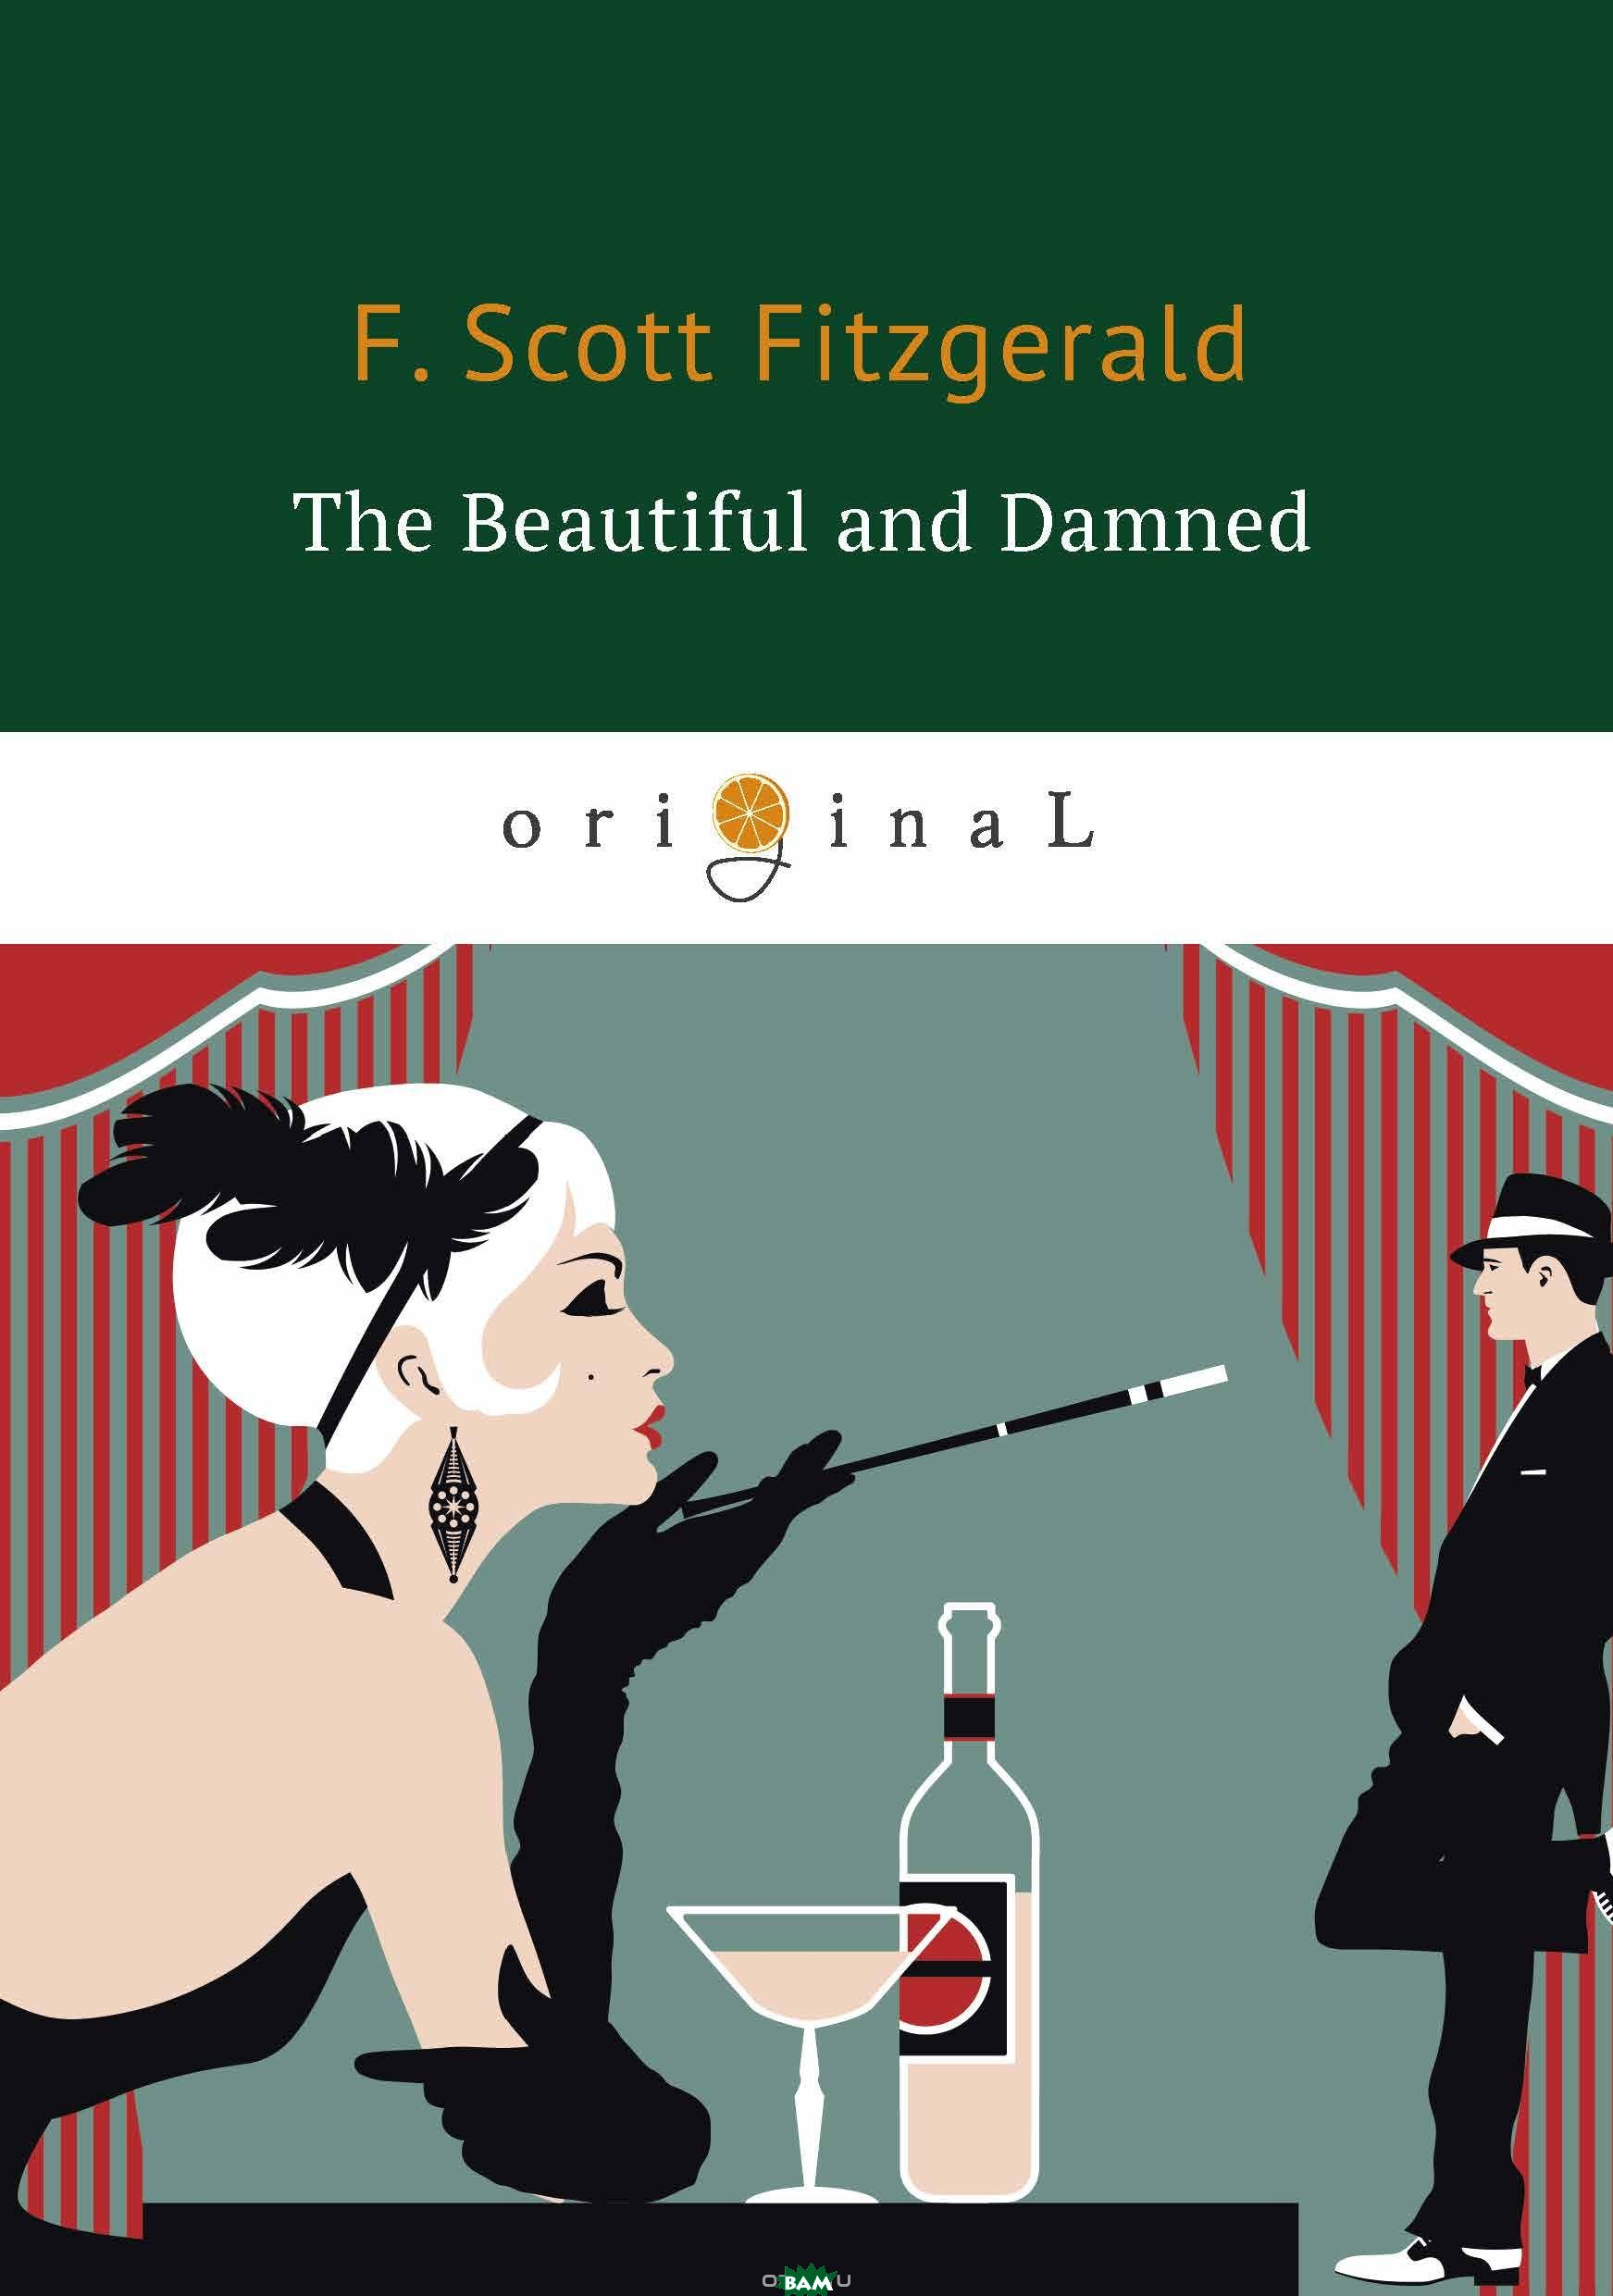 Купить The Beautiful and Damned, T8RUGRAM, Fitzgerald Fransis Scott, 978-5-521-06884-5